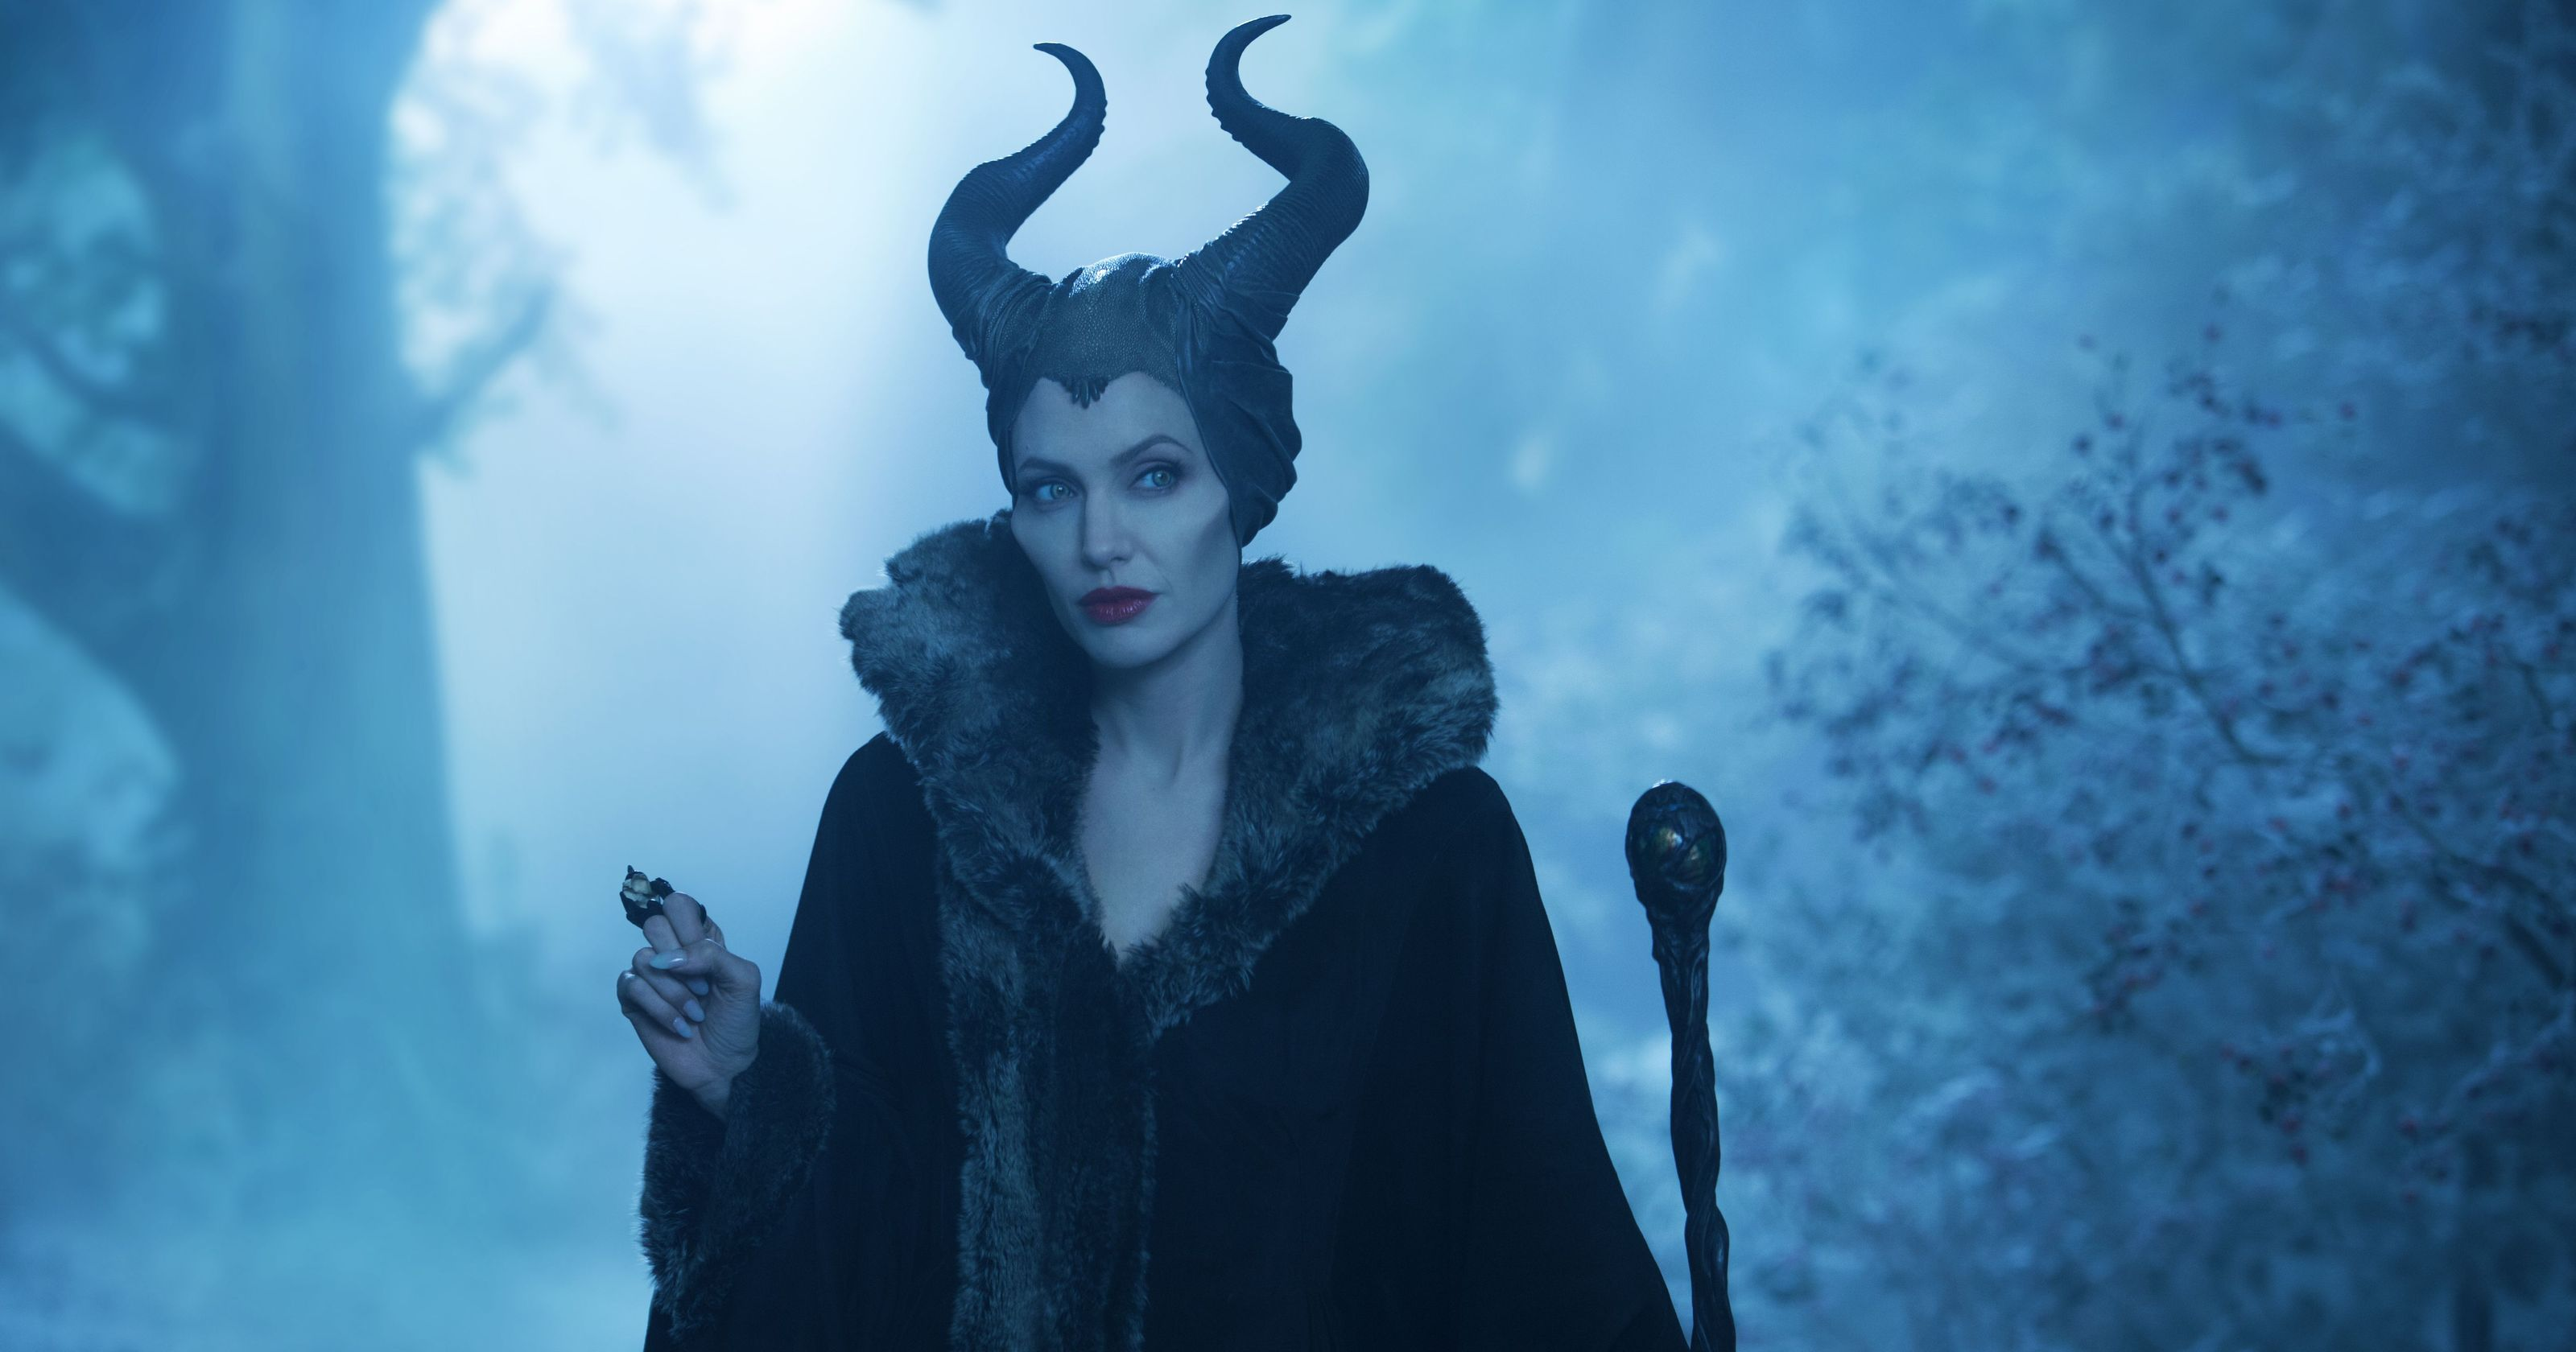 635972303584698212-MALEFICENT-REVIEW-JOLIE-64559172